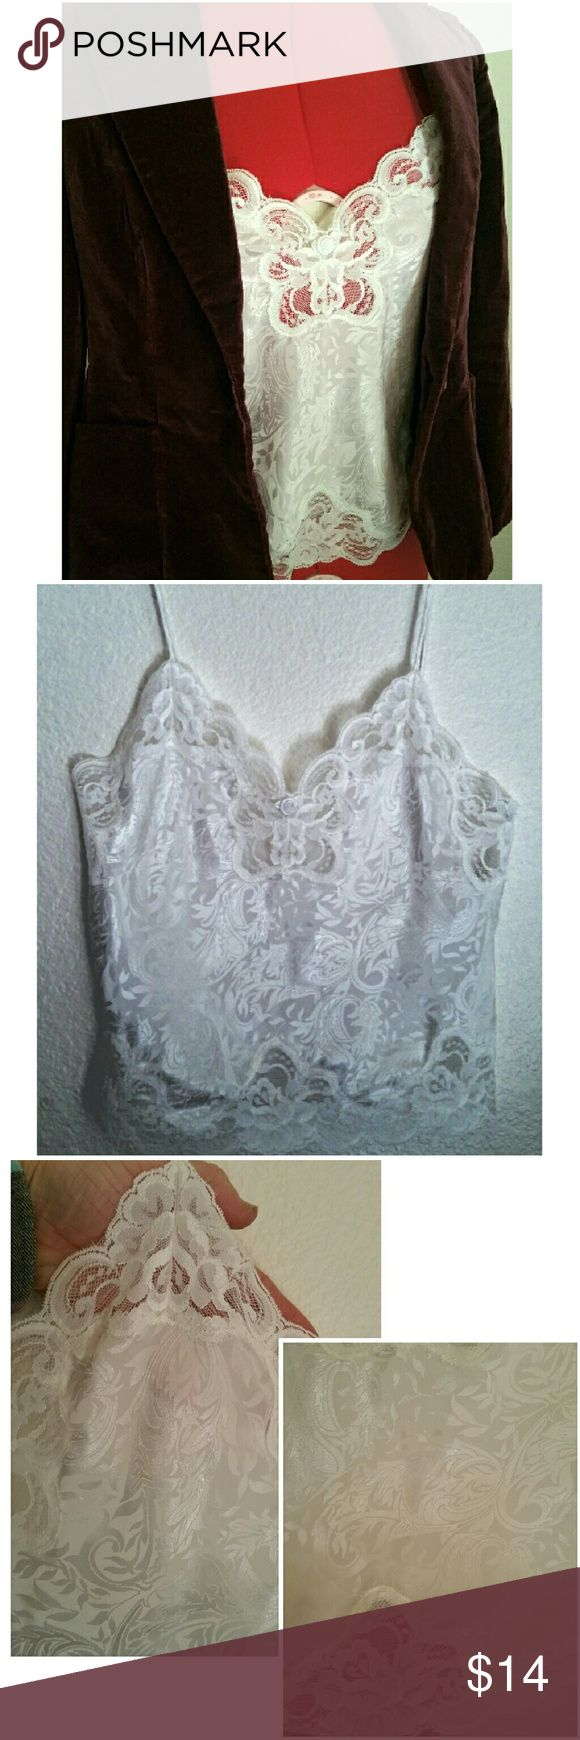 "Vtg. White Camisole Lingerie w/Lace Trim Lovely, shiny, white on white jacquard fabric, with wide lace trim top and bottom.  Looks great under a blazer to wear it  for daytime! Wear as a top, sleepware, or leisure wear. Vintage Deena camisole, tagged a size PETITE/32, 100% polyester. 17"" armpit to armpit; 12"" long, from underarm to bottom. Vintage Intimates & Sleepwear Chemises & Slips"